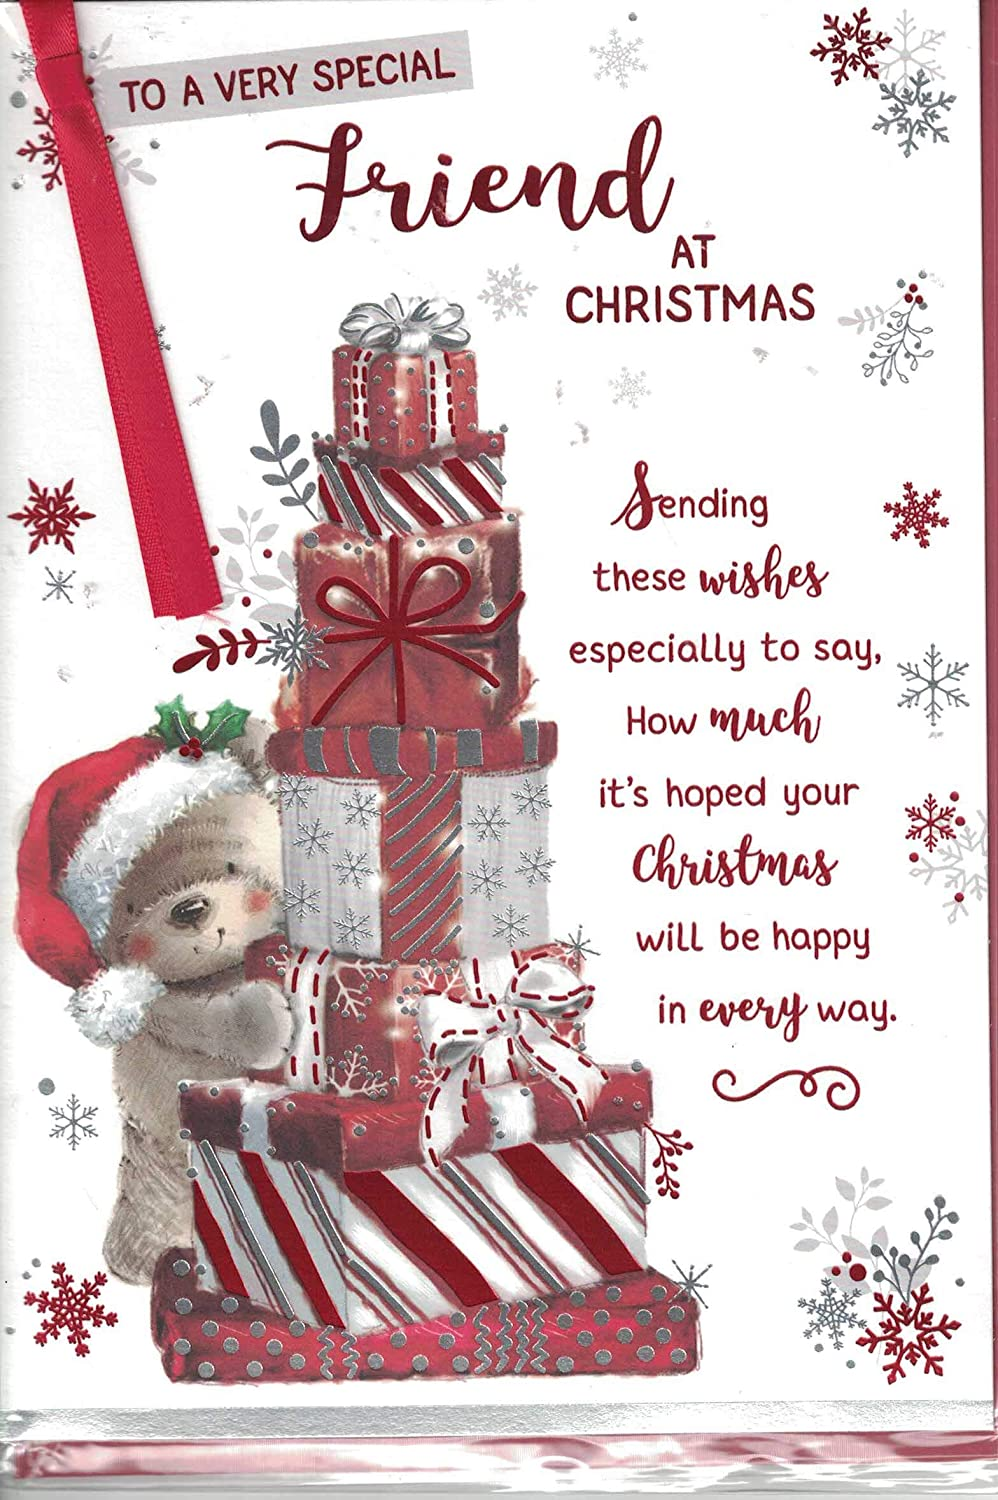 Christmas Wishes Card.Friend Christmas Card To A Very Special Friend Christmas Wishes Santa Bear Bunting Quality Card